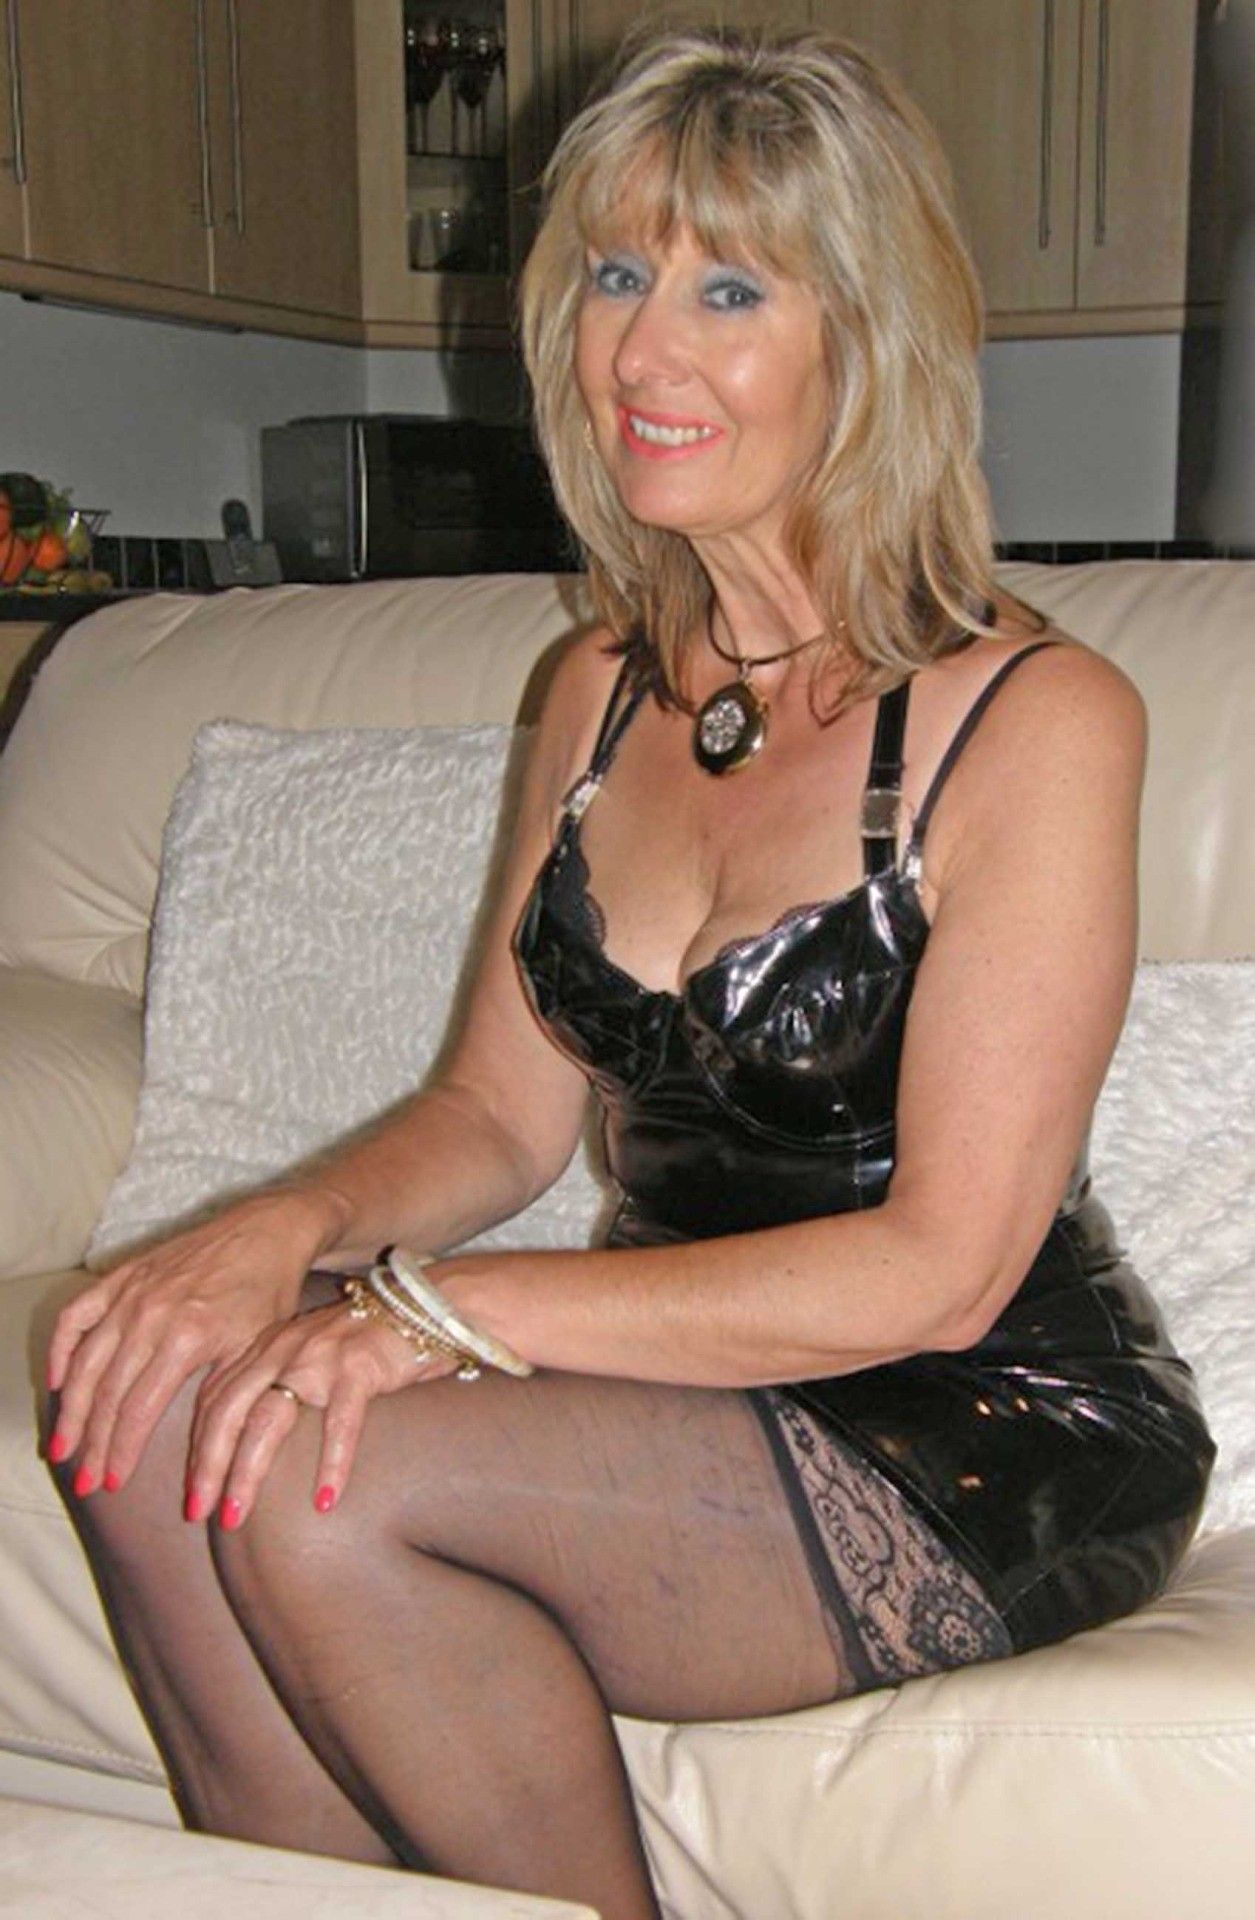 Rich cougar dating site 10